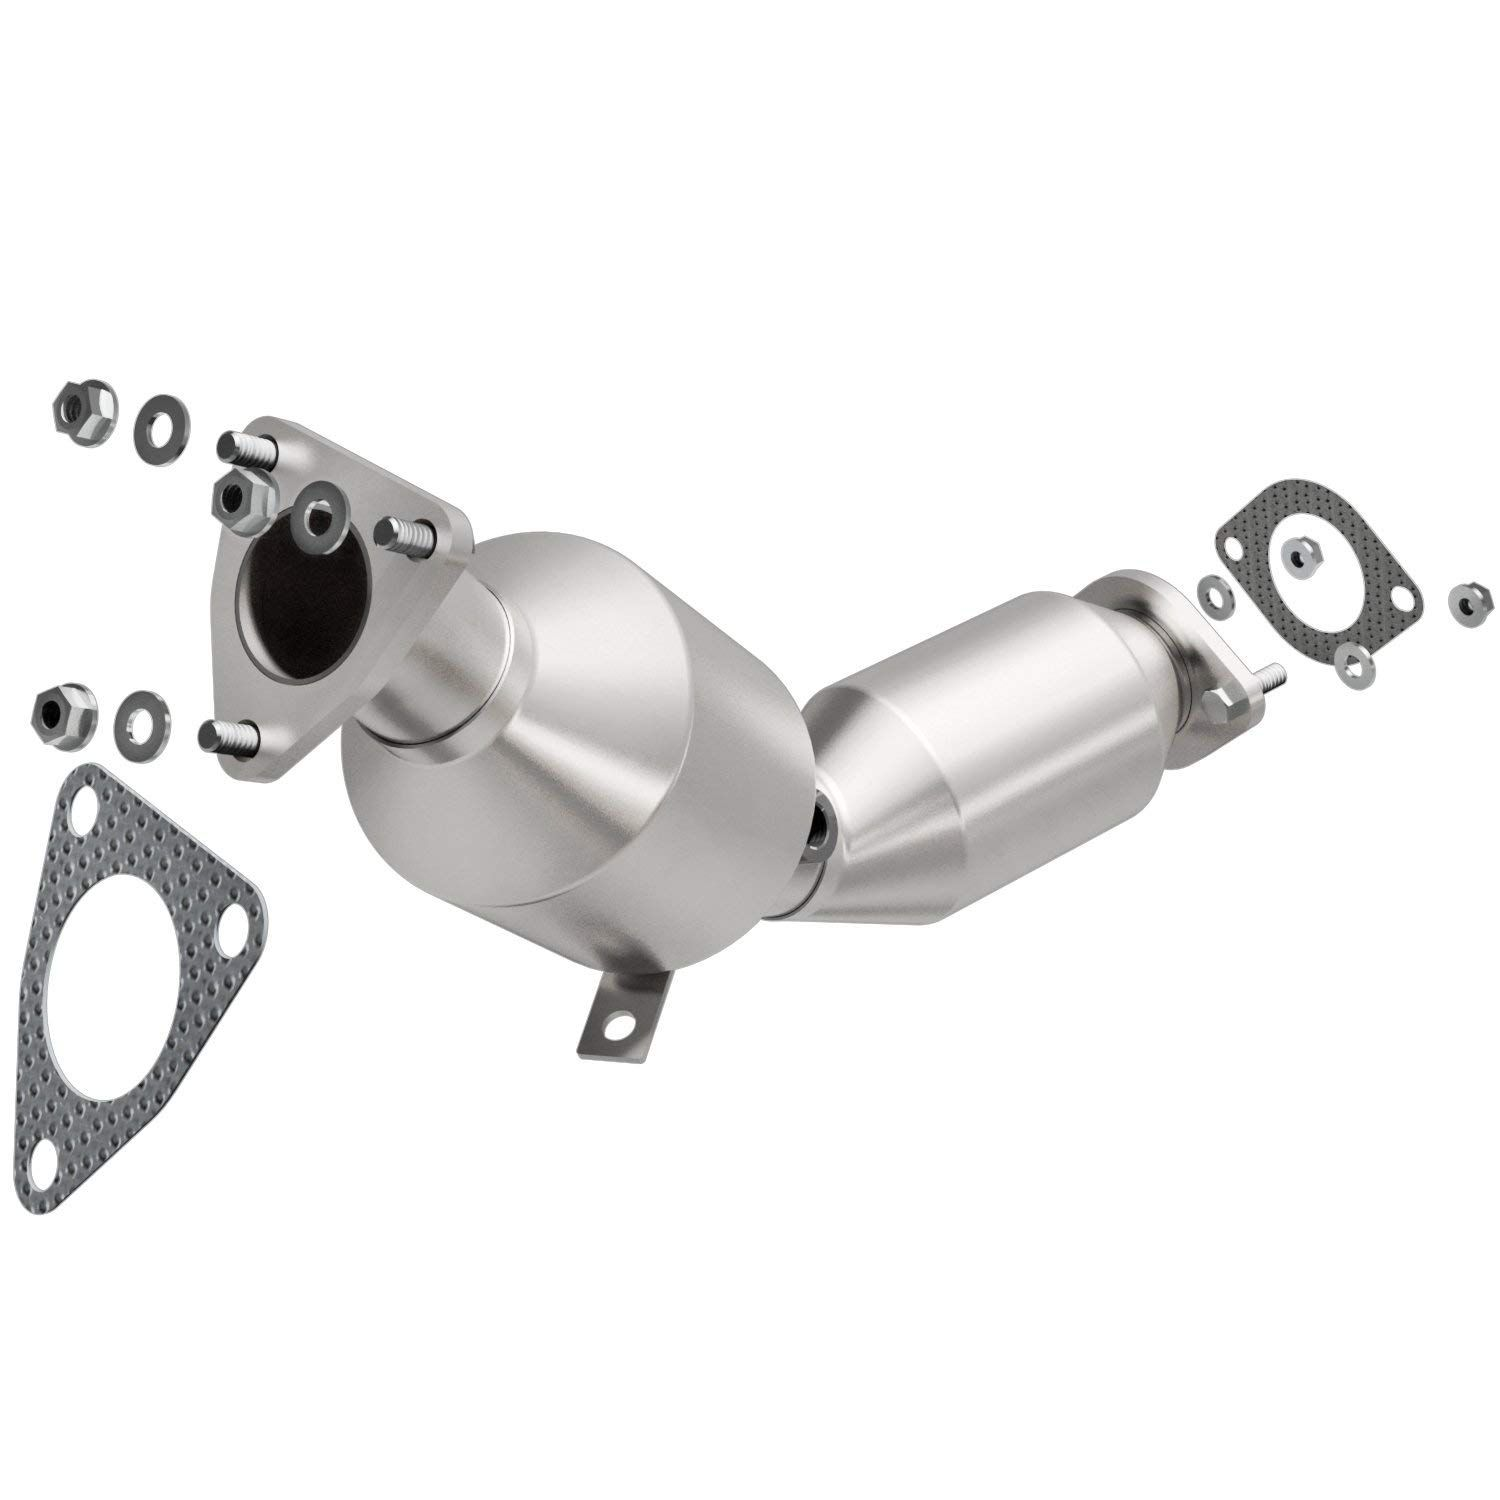 Magnaflow Direct-Fit Catalytic Converter, RH VQ35DE CARB-Compliant - Nissan 350Z / Infiniti G35